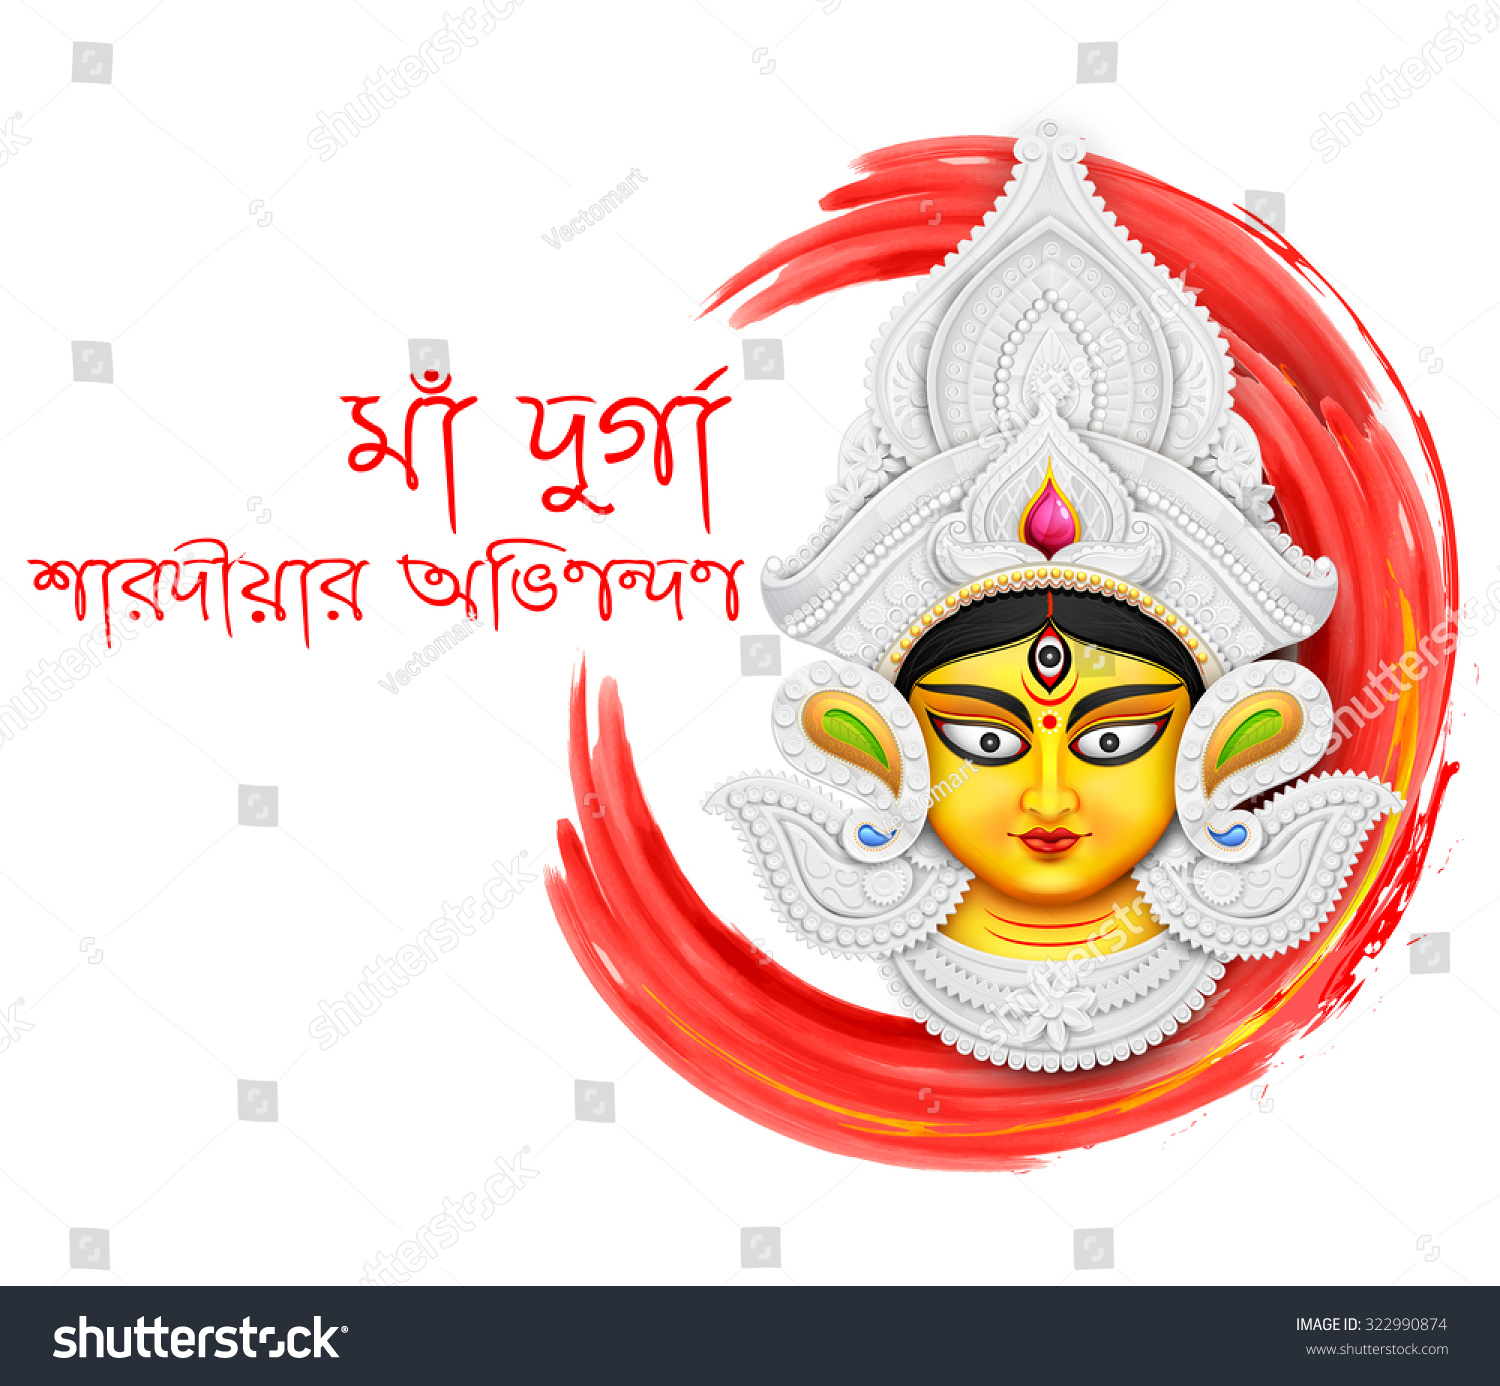 Illustration happy durga puja background bengali stock vector illustration of happy durga puja background with bengali text meaning mother durga autumn greetings m4hsunfo